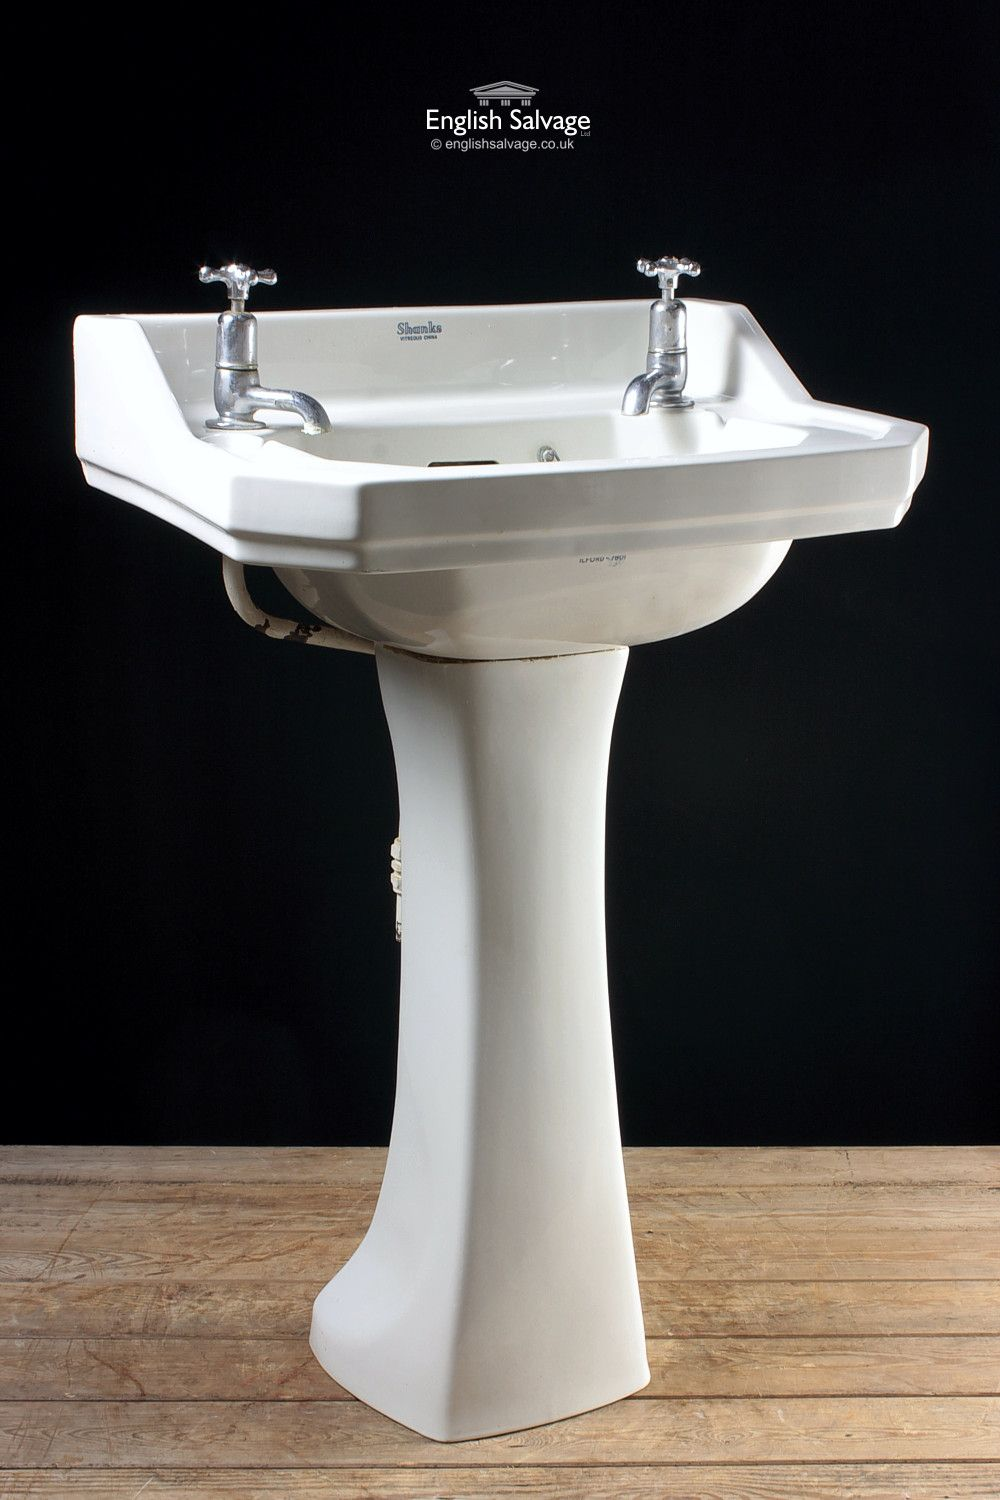 Shanks sink and stand reclaimed porcelain sinks and chrome stands - Shanks Cut Corner Sink And Pedestal